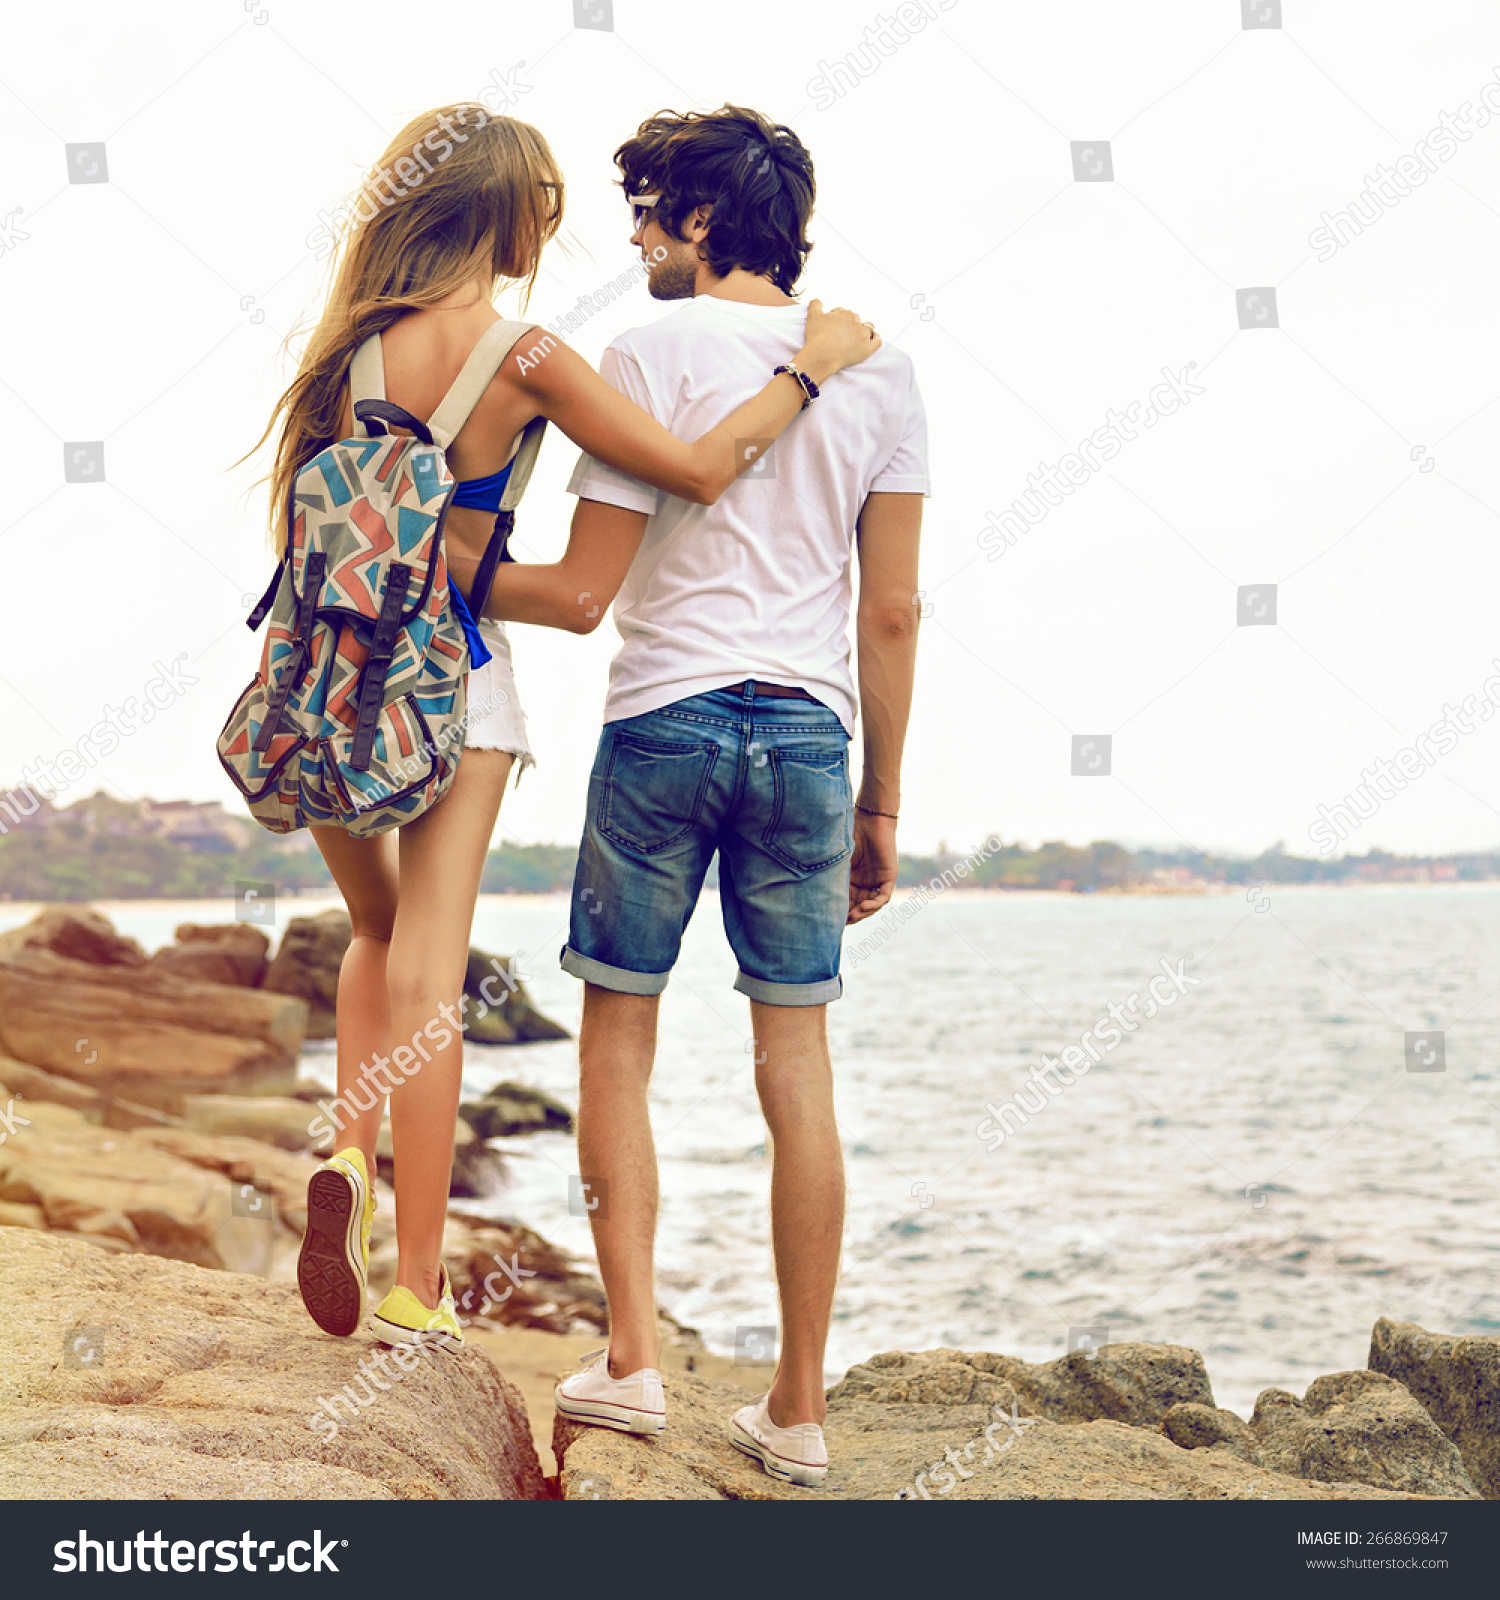 Outdoor Summer Portrait Of Young Romantic Couple In Love